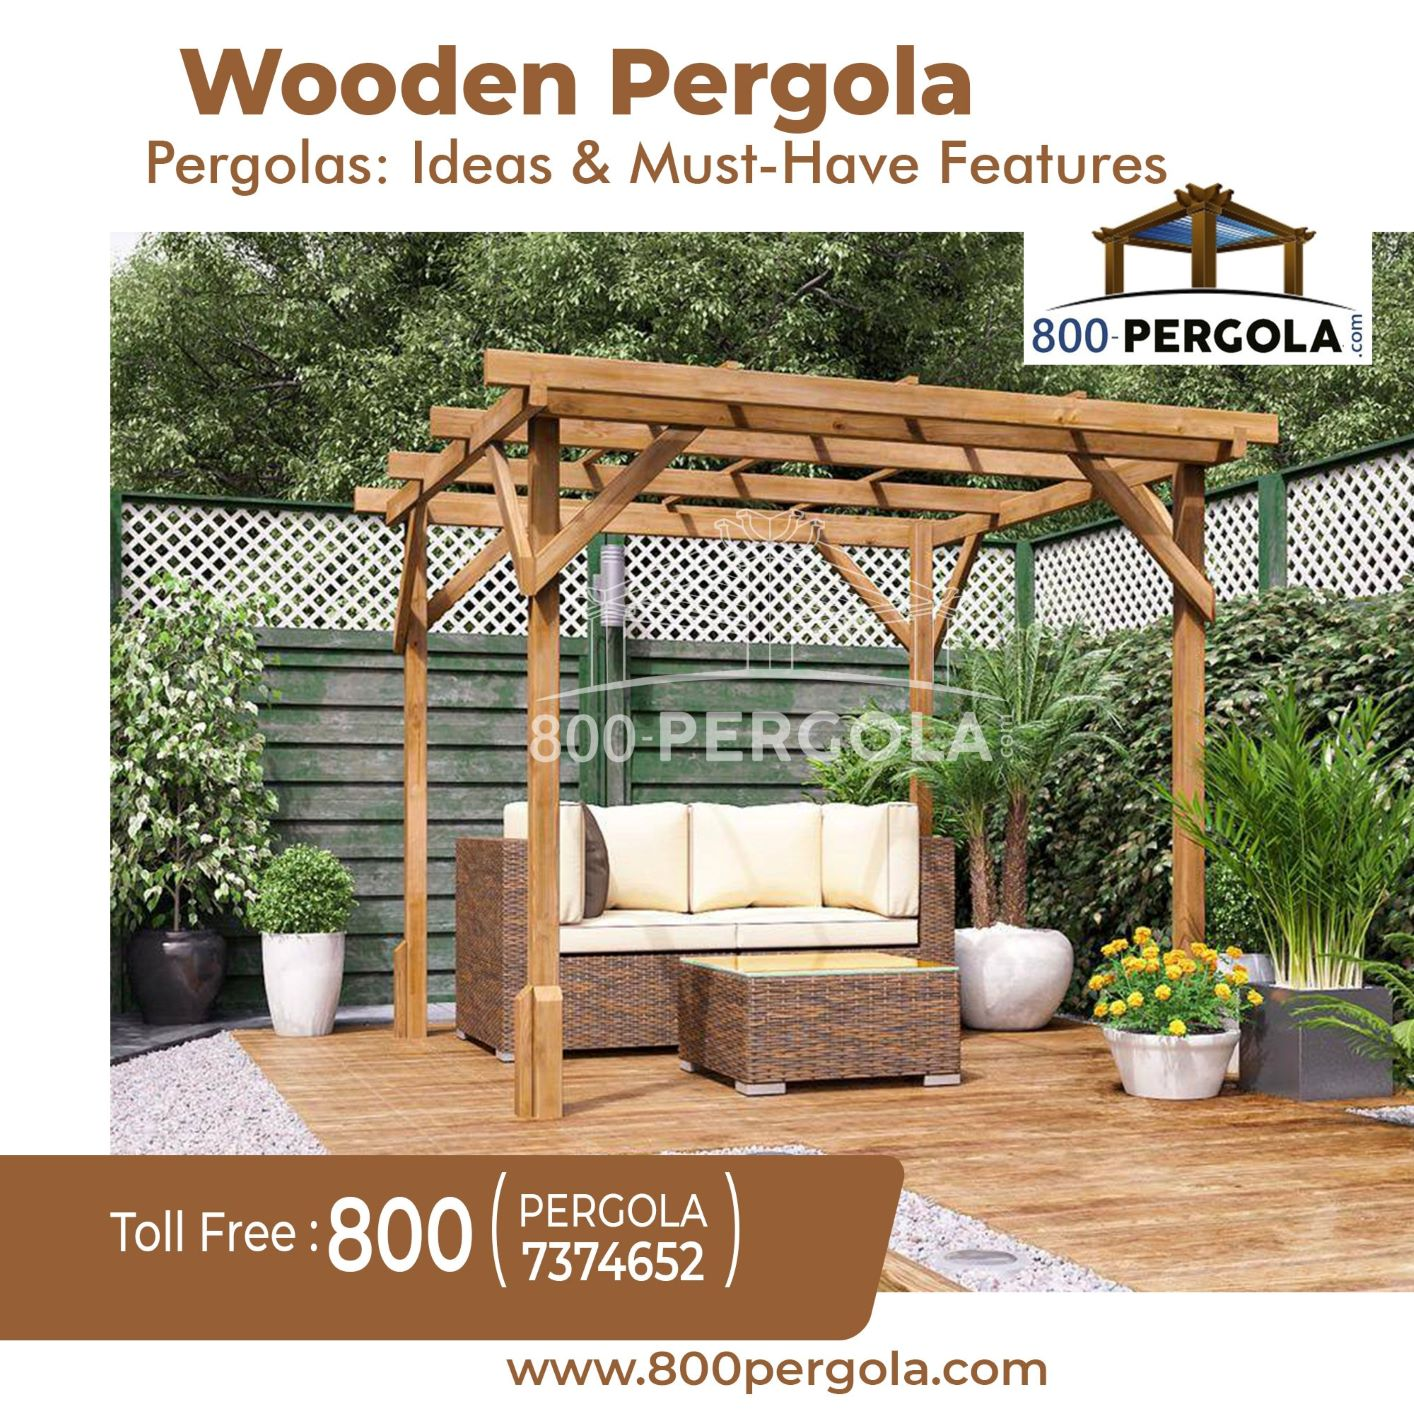 Wooden Pergolas: Ideas and Must-Have Features